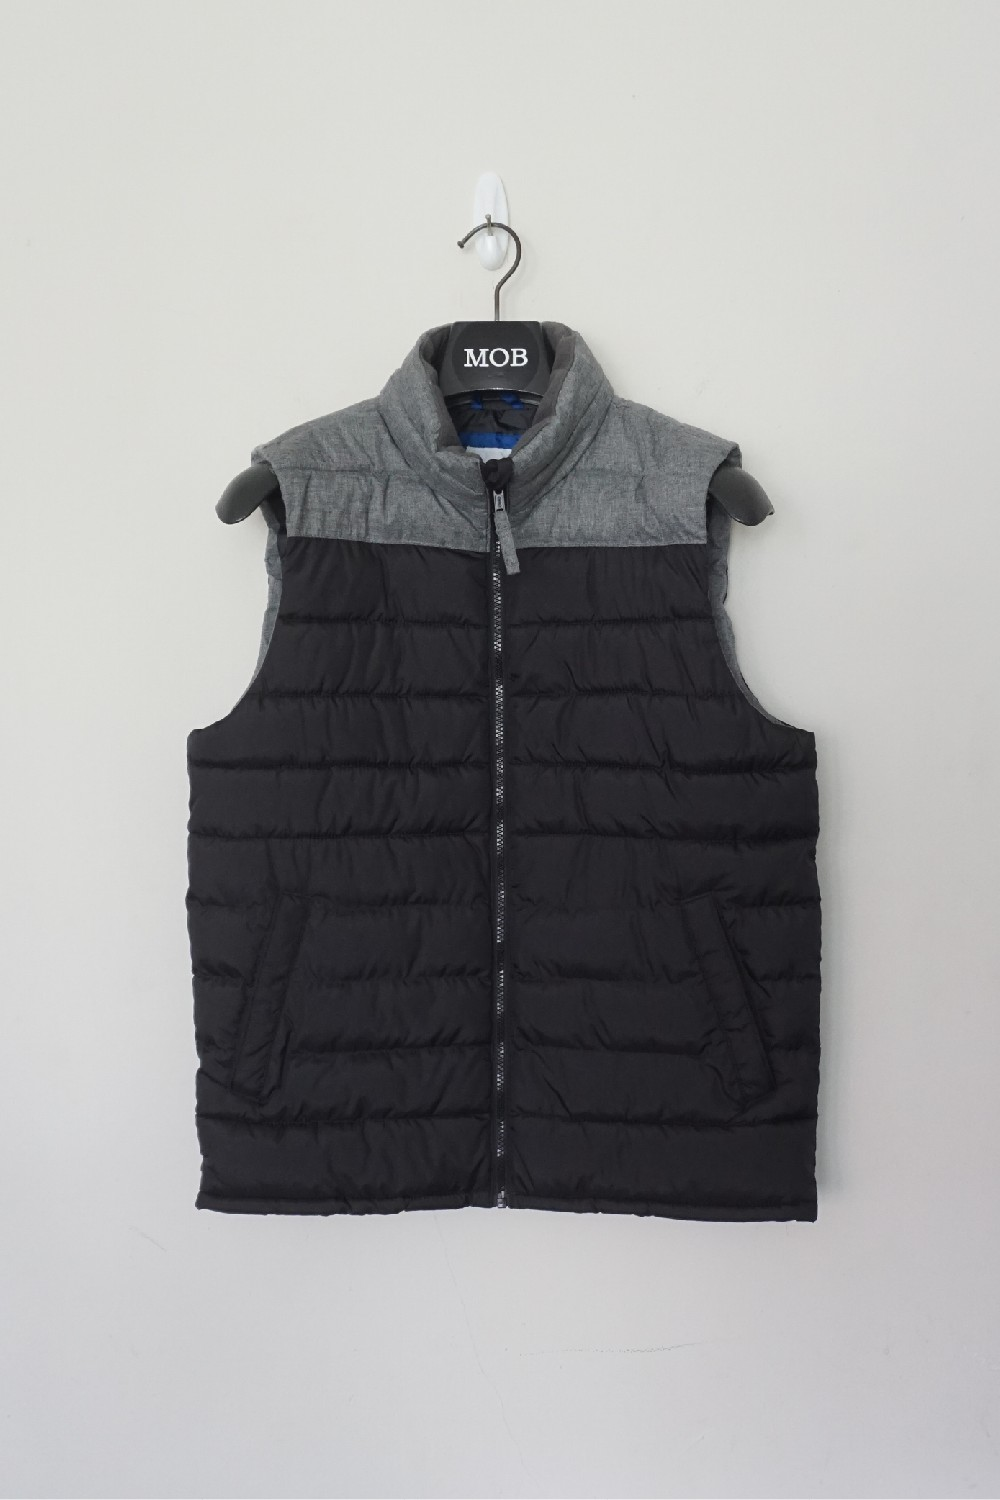 On07003 Mens Puffer Colorblock Quilted Vest Black Grey